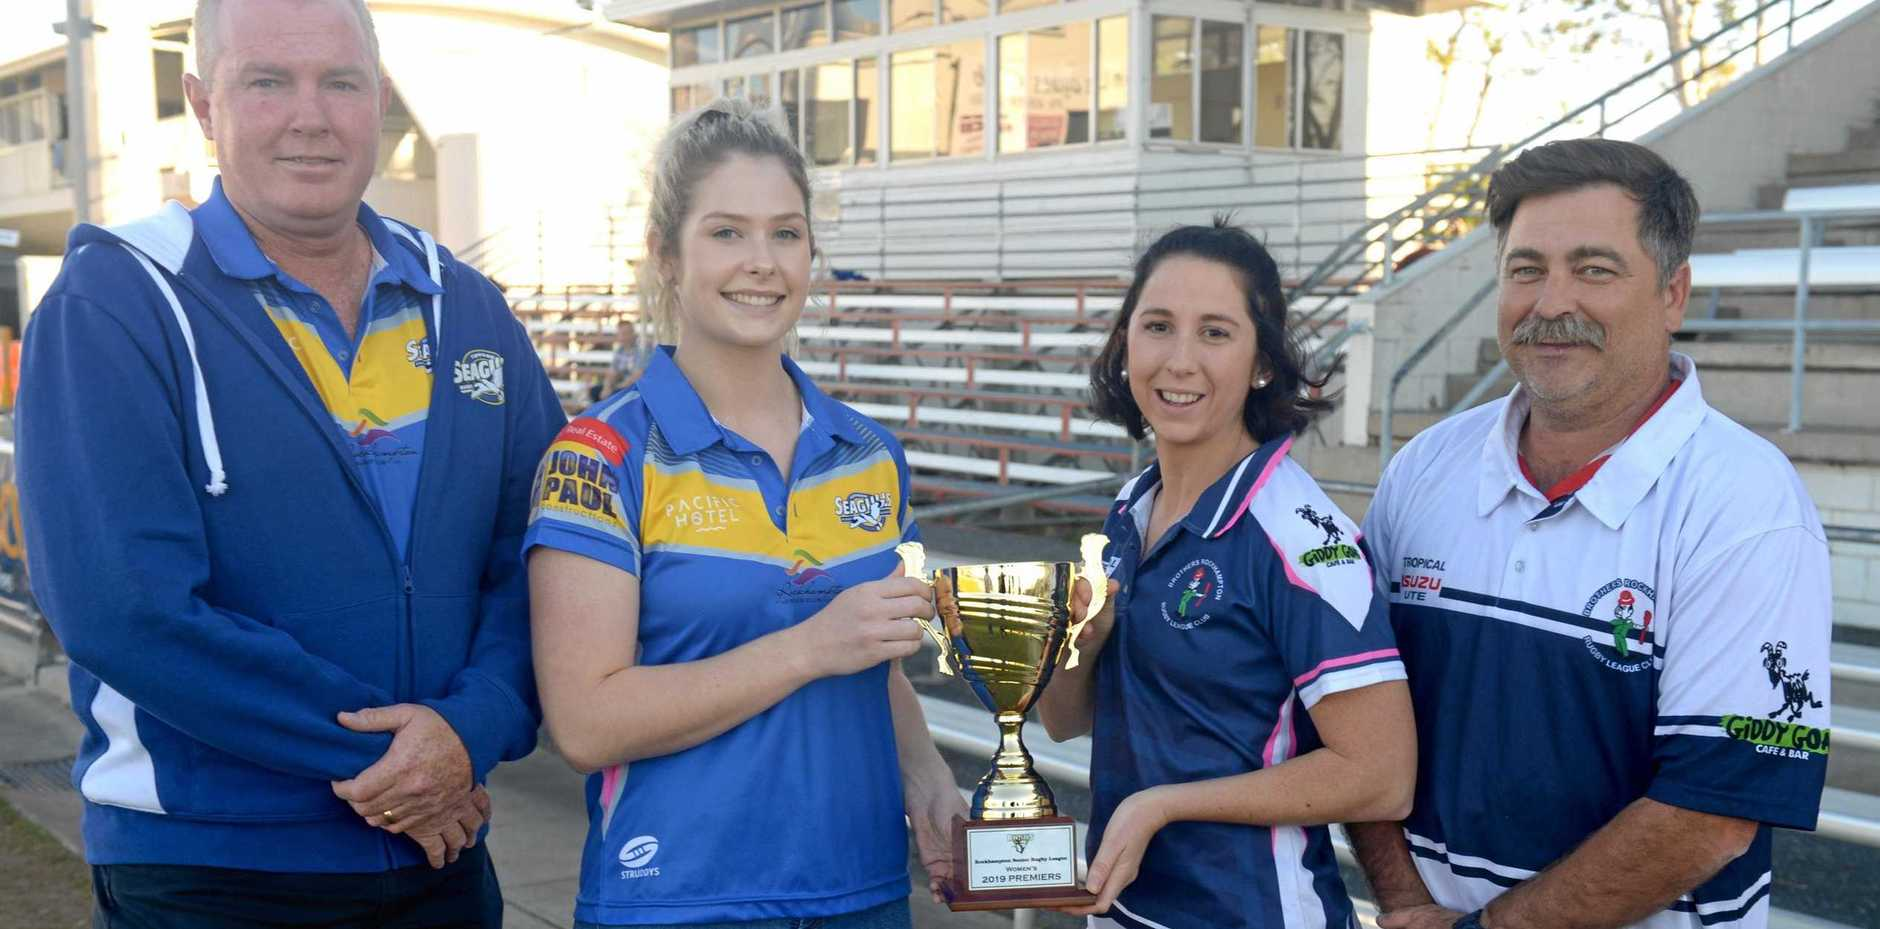 EYES ON THE PRIZE: Yeppoon women's coach Paul Minto and captain Meg Neven with Rockhampton Brothers captain Hannah Burke and coach Dominic Draper.